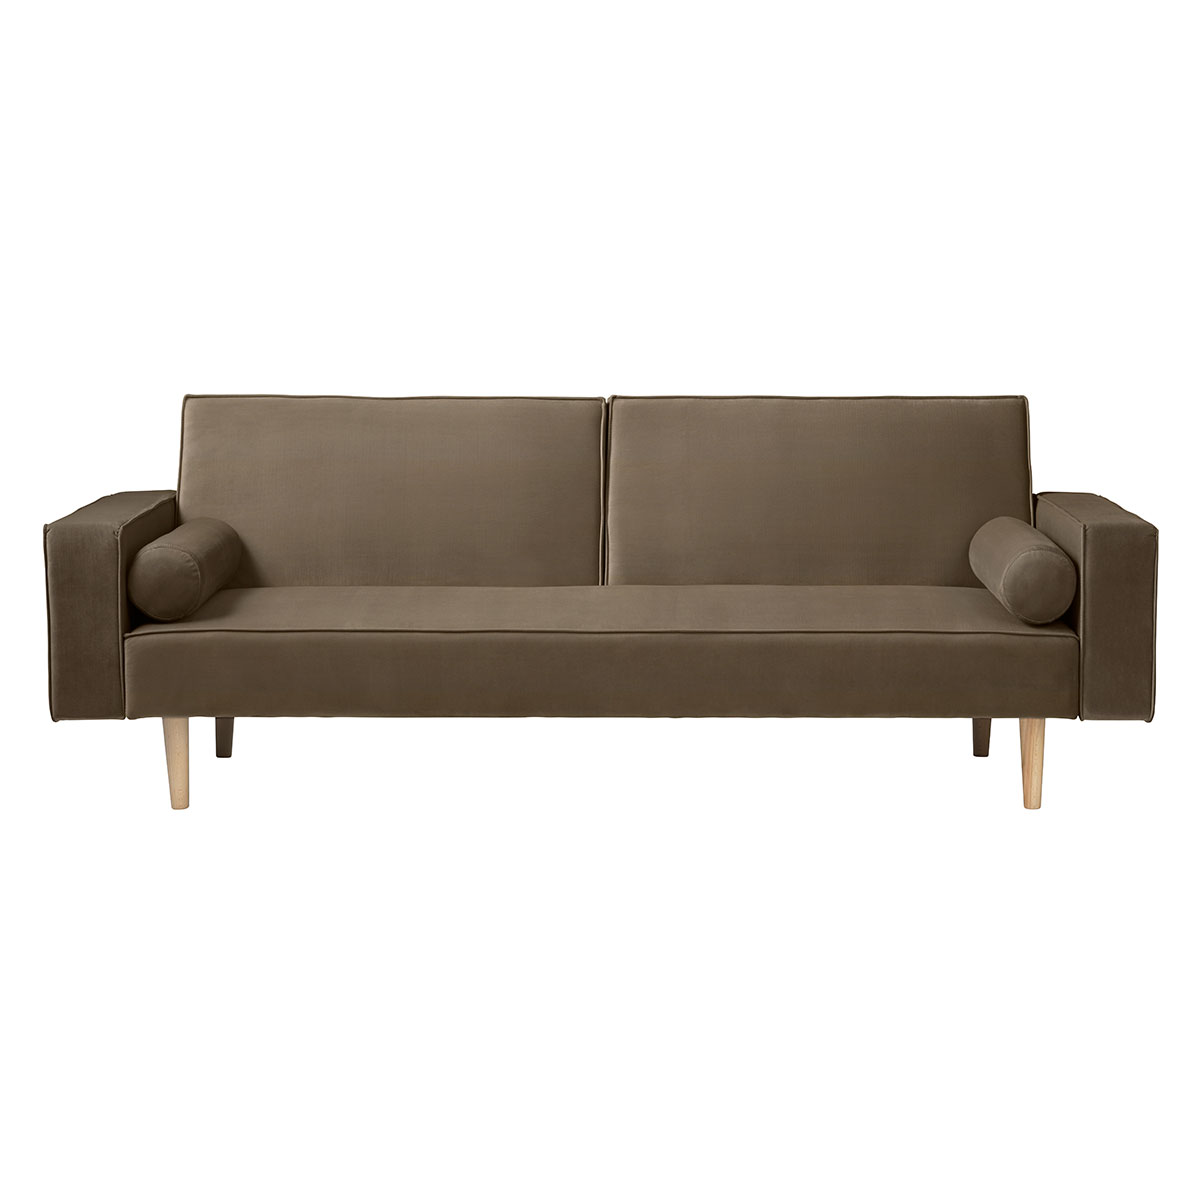 Living&more sovesofa - Lucy - Mocca